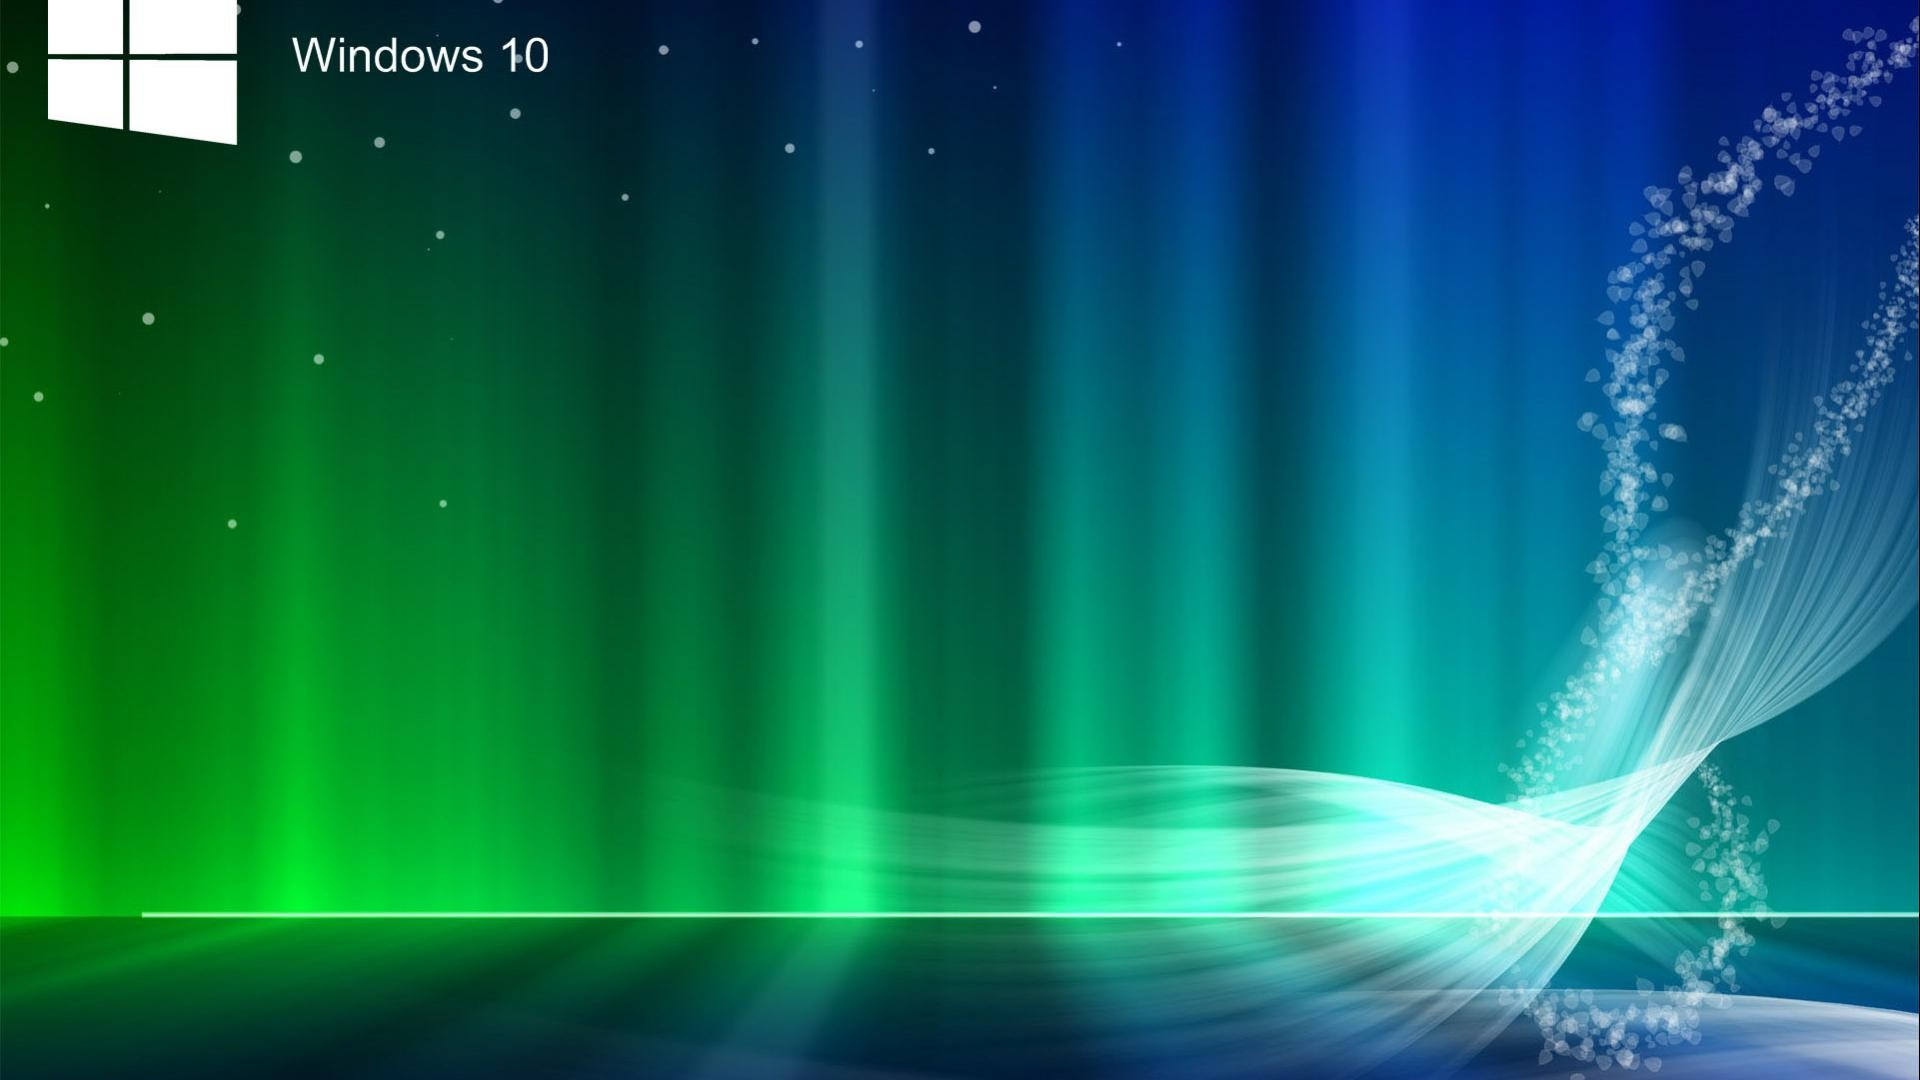 Wallpapers For Windows 10 Hd Posted By Michelle Anderson